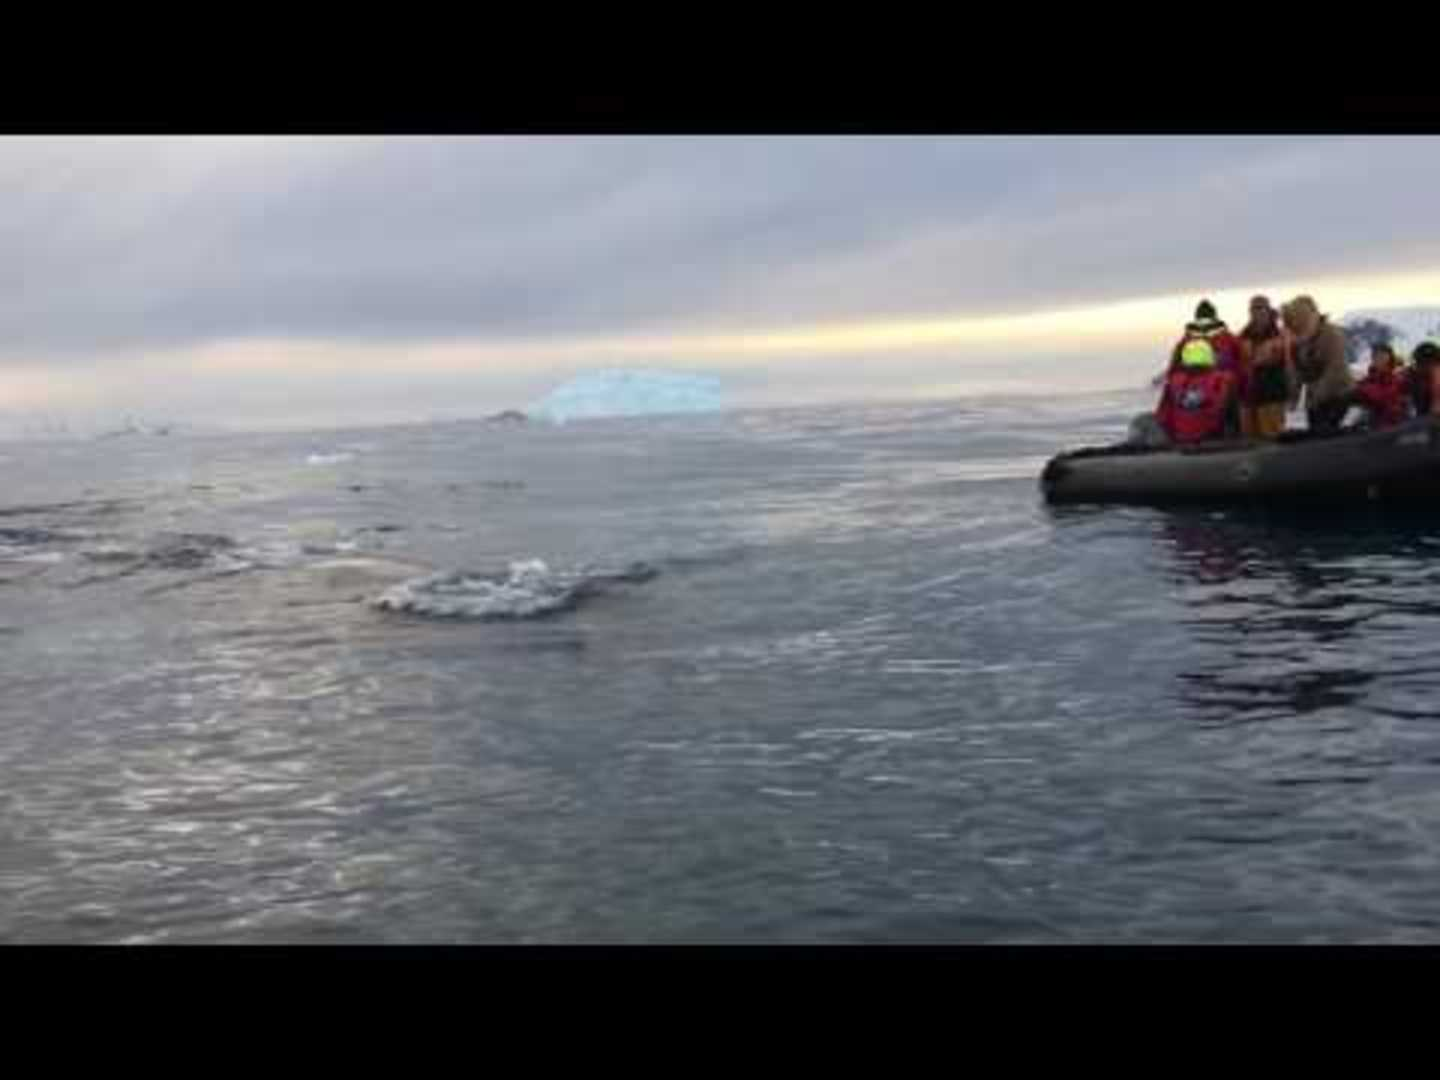 People Witness Whale Up Close During a Cruise With Experts In Antarctica - Yahoo News UK